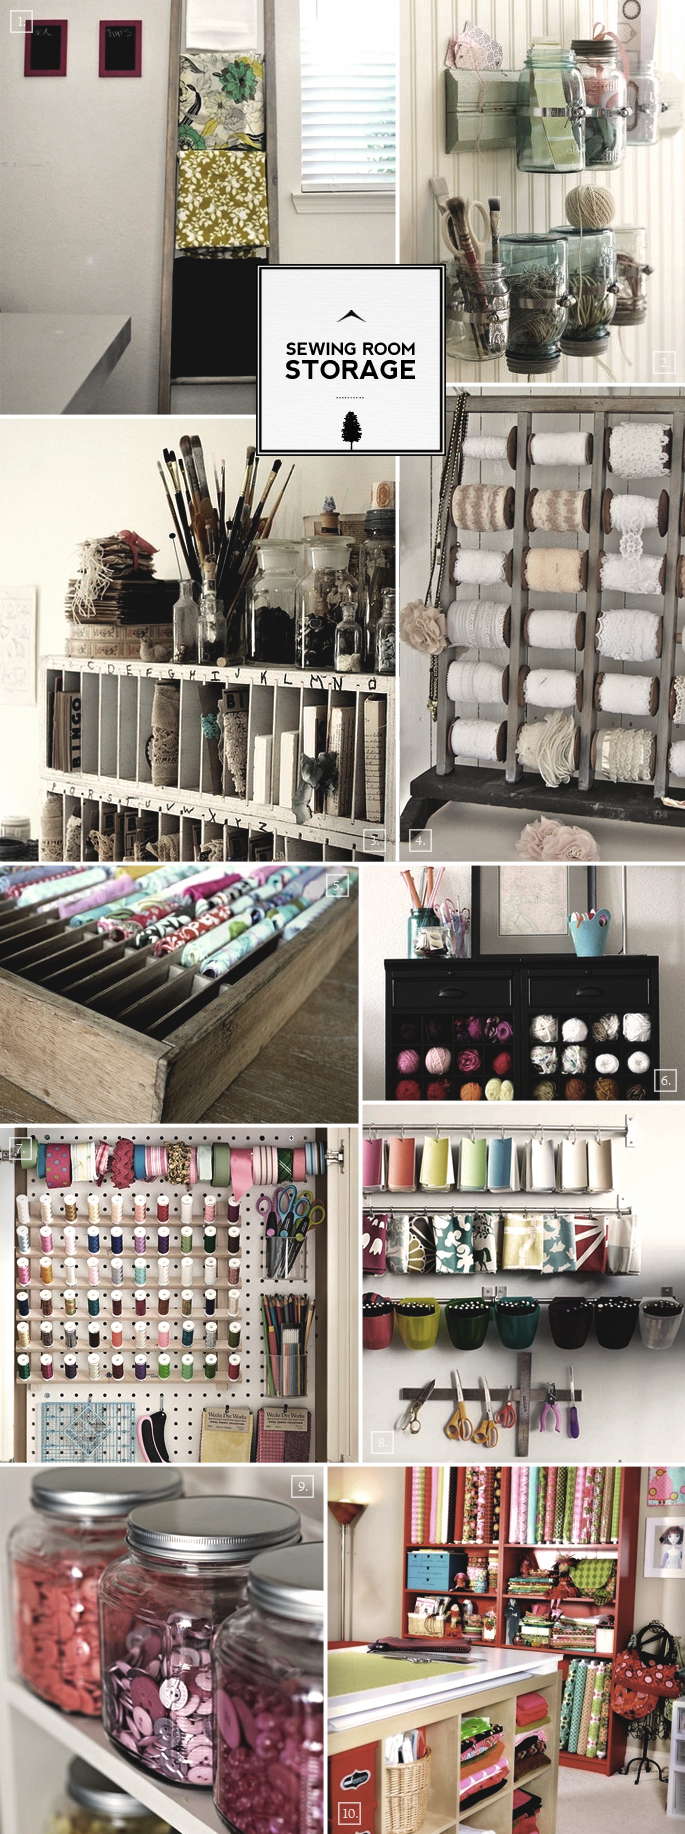 Sewing Room Organization Ideas